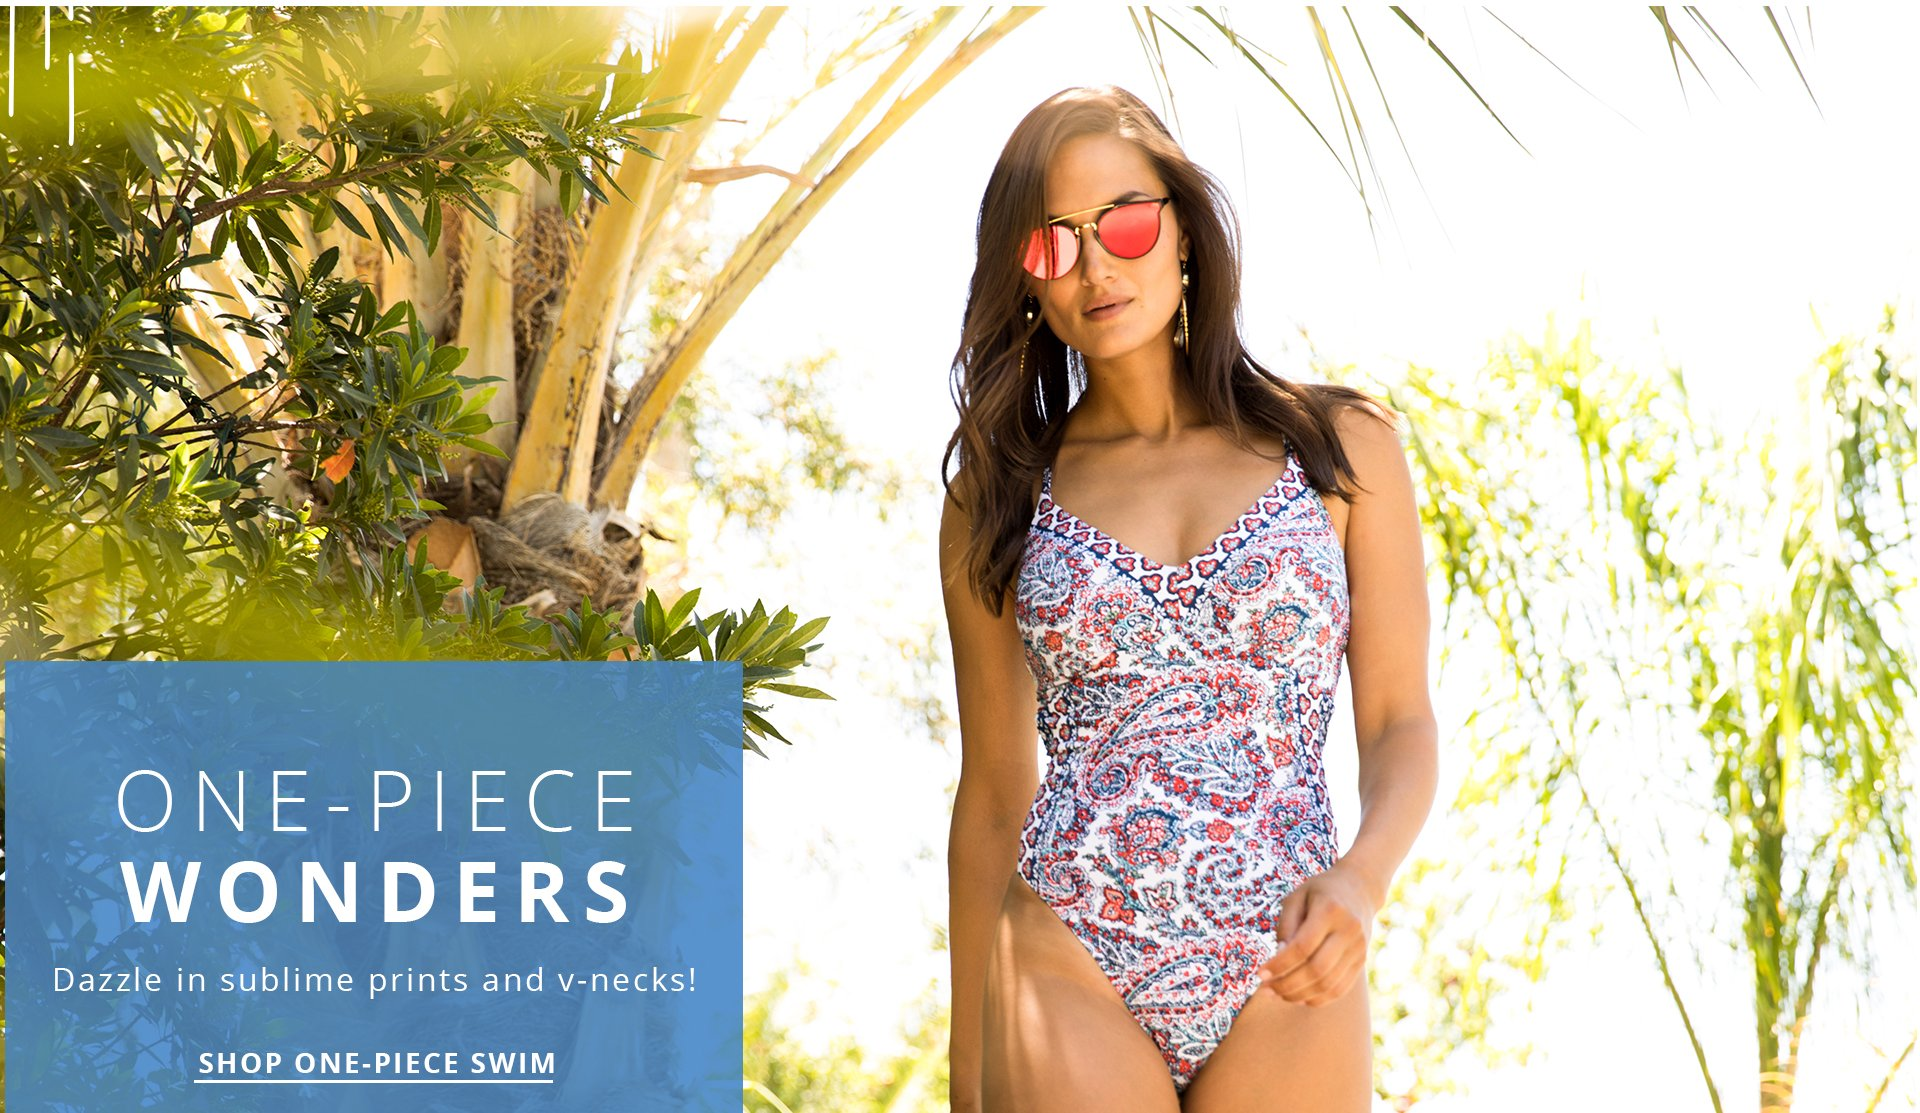 Shop One-Piece Swim